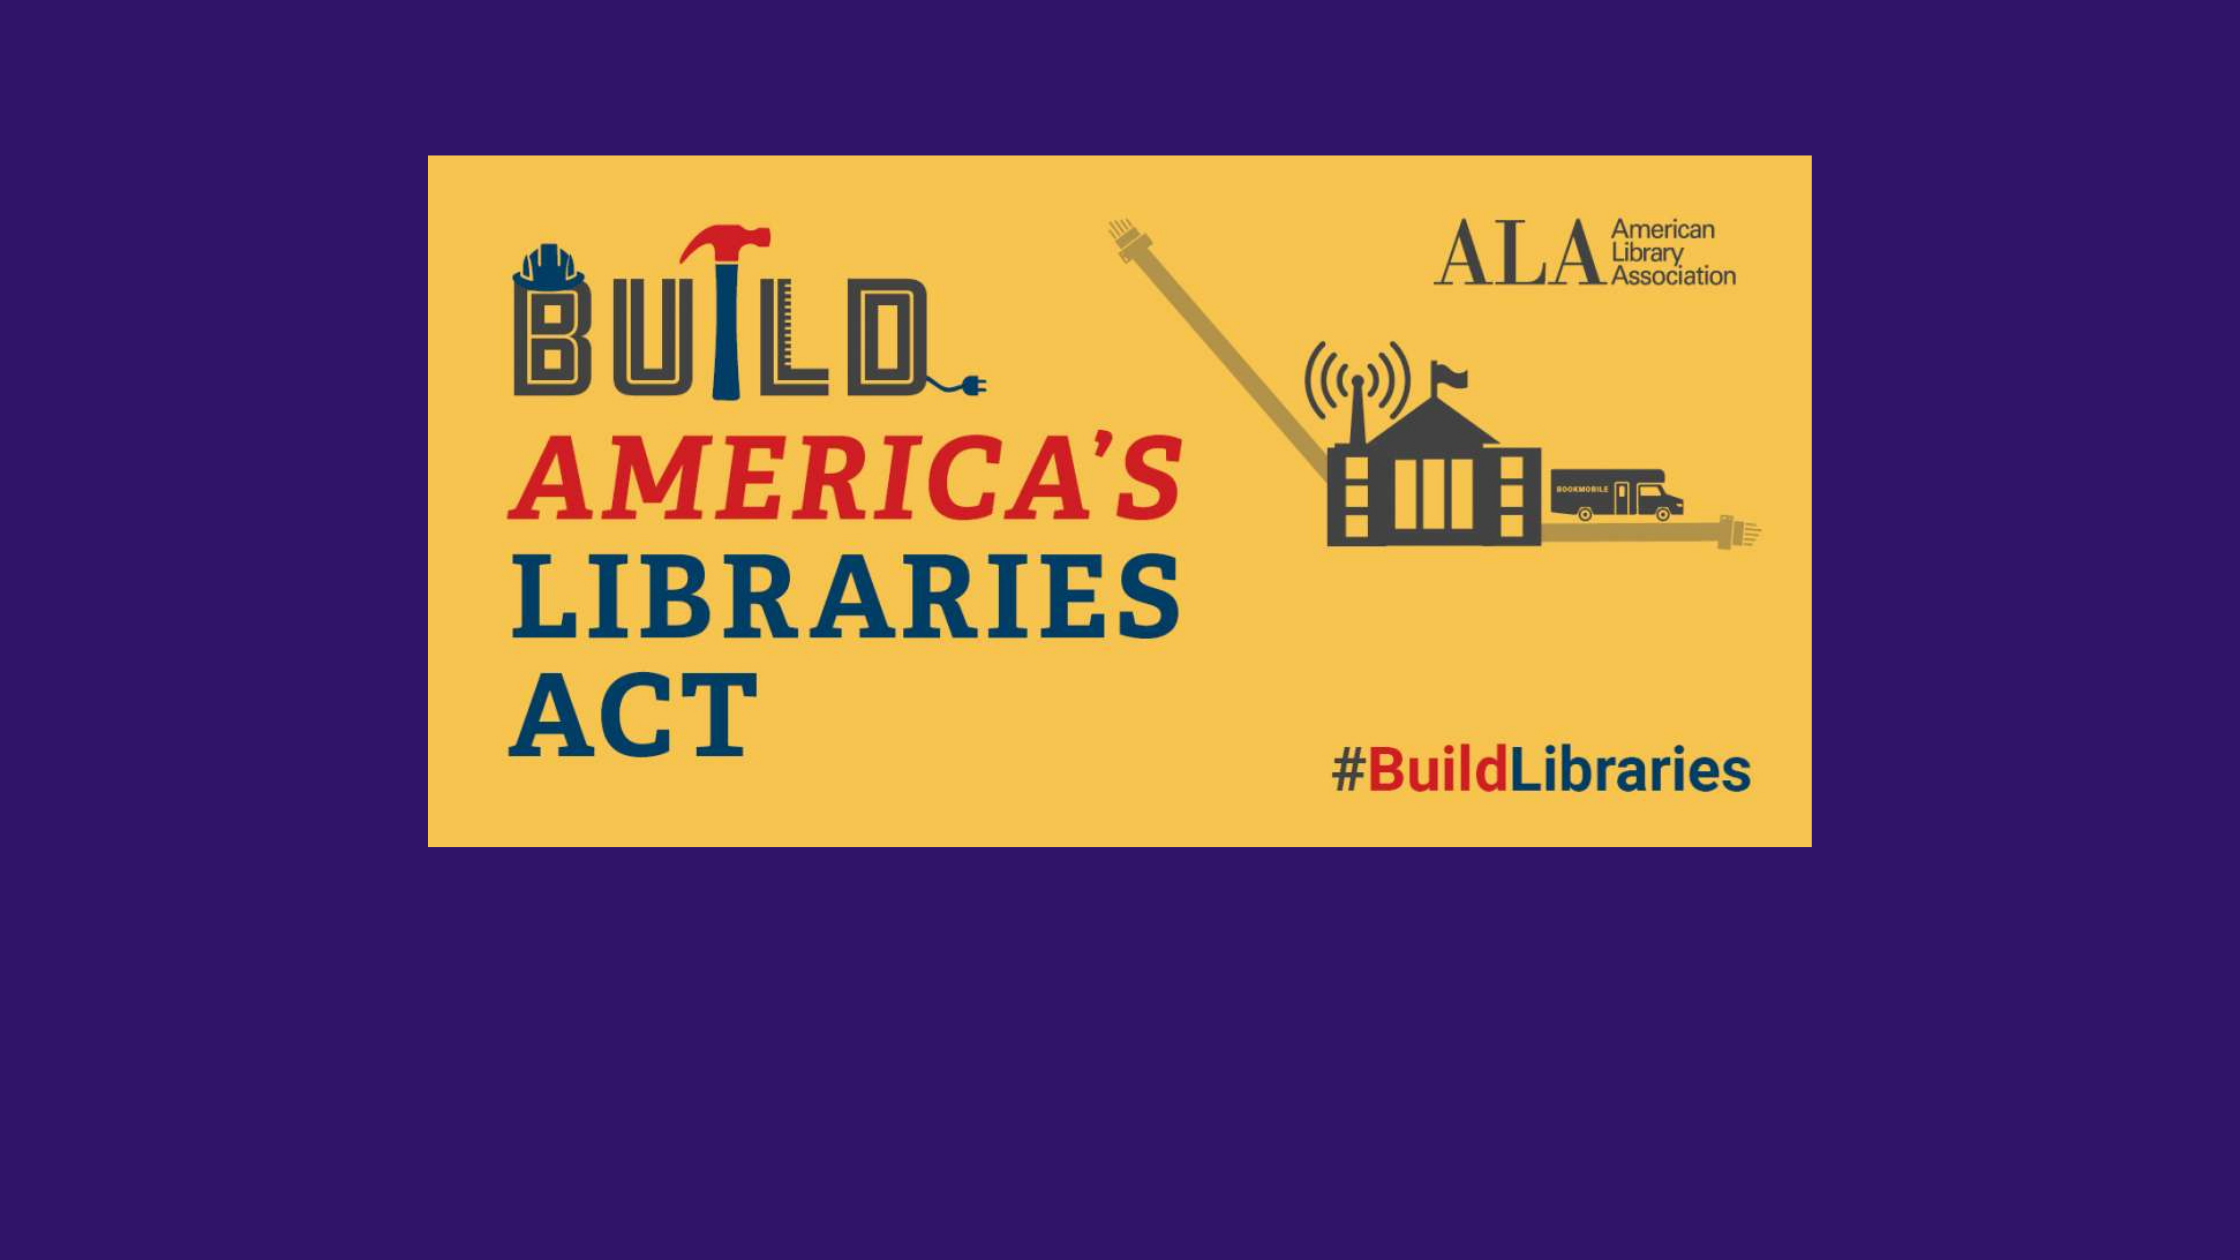 Build America's Libraires Act logo and ALA logo